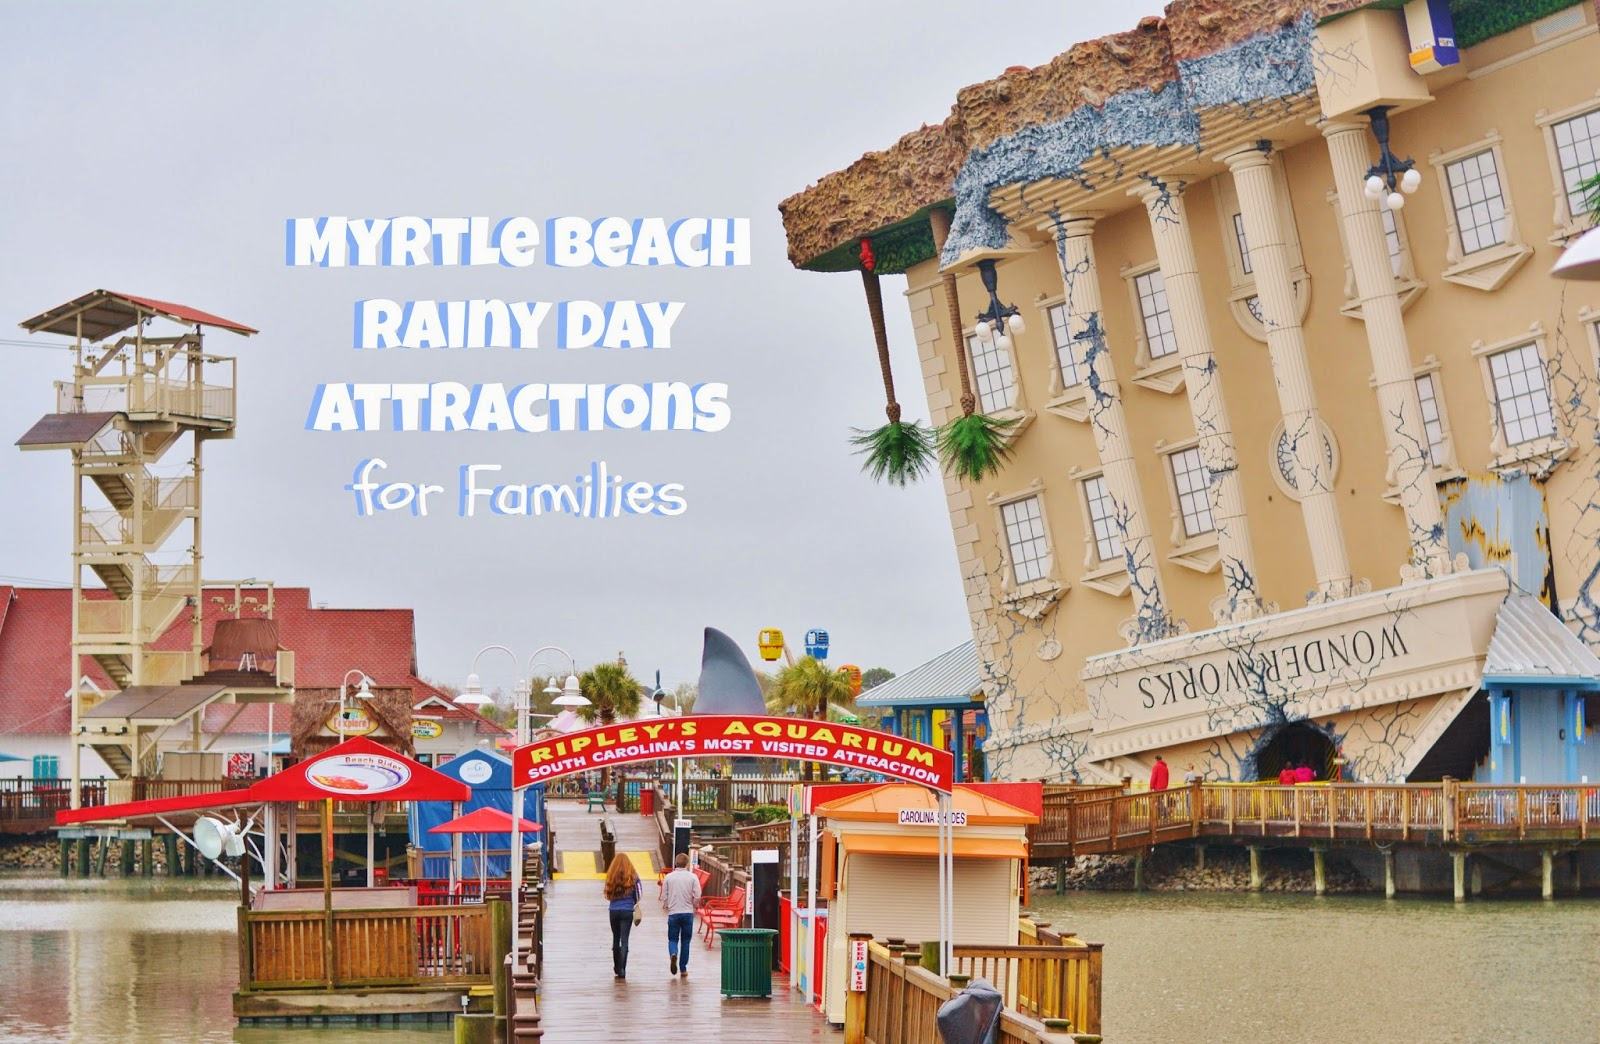 Myrtle Beach rainy day attractions. #travel #familytravel